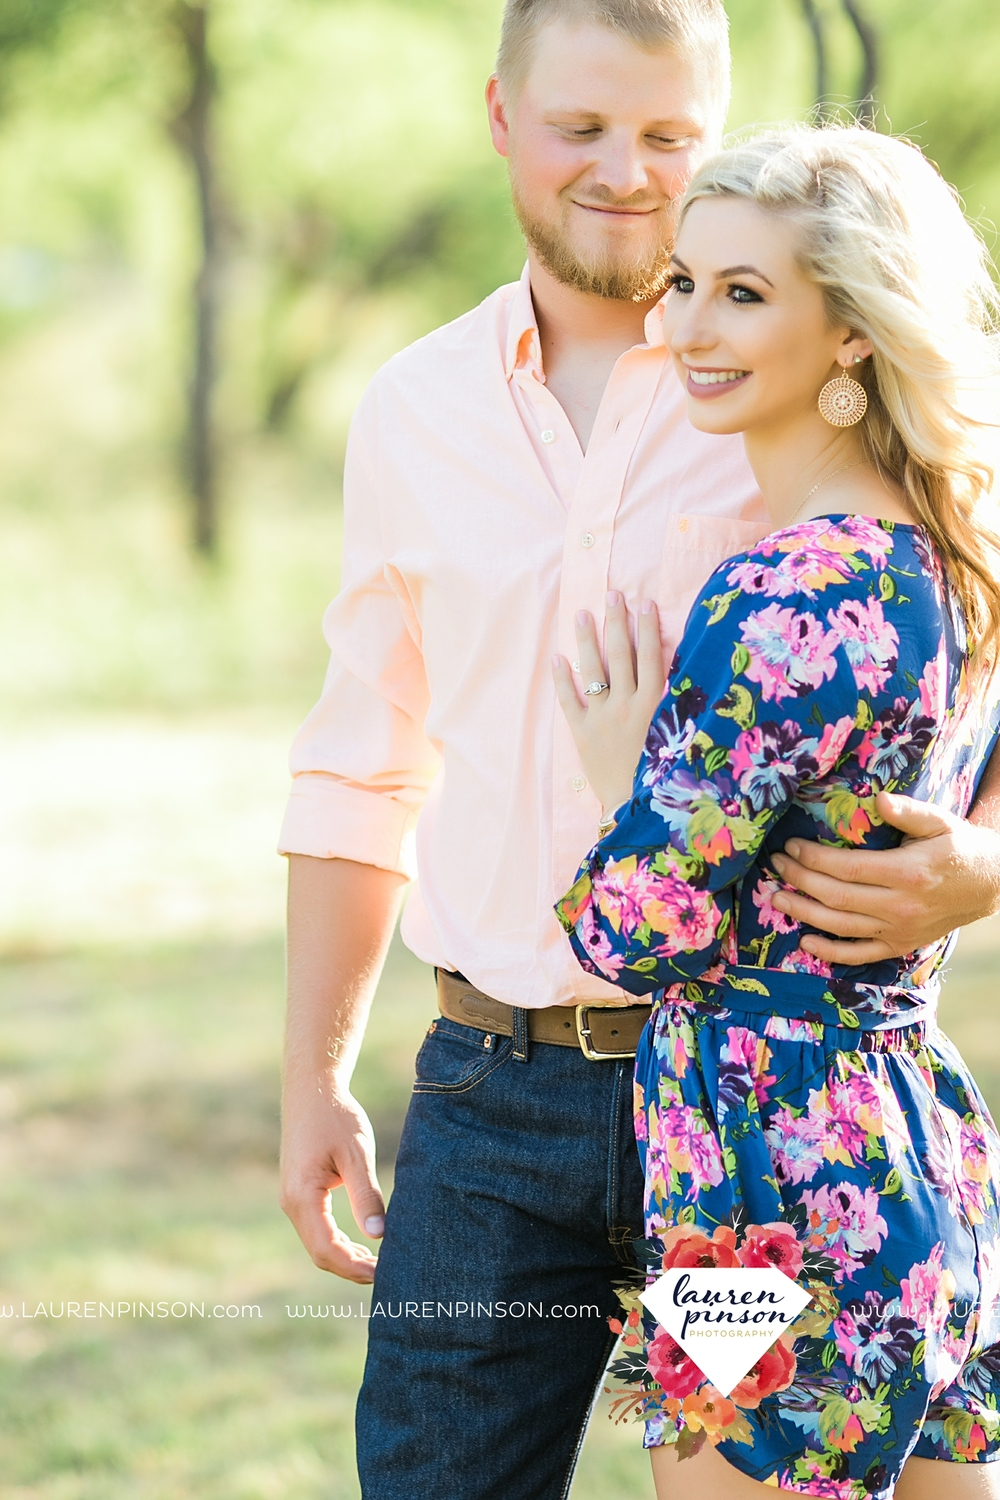 wichita-falls-texas-wedding-photographer-scotland-texas-engagement-session-country-barn-field-windthorst_2734.jpg